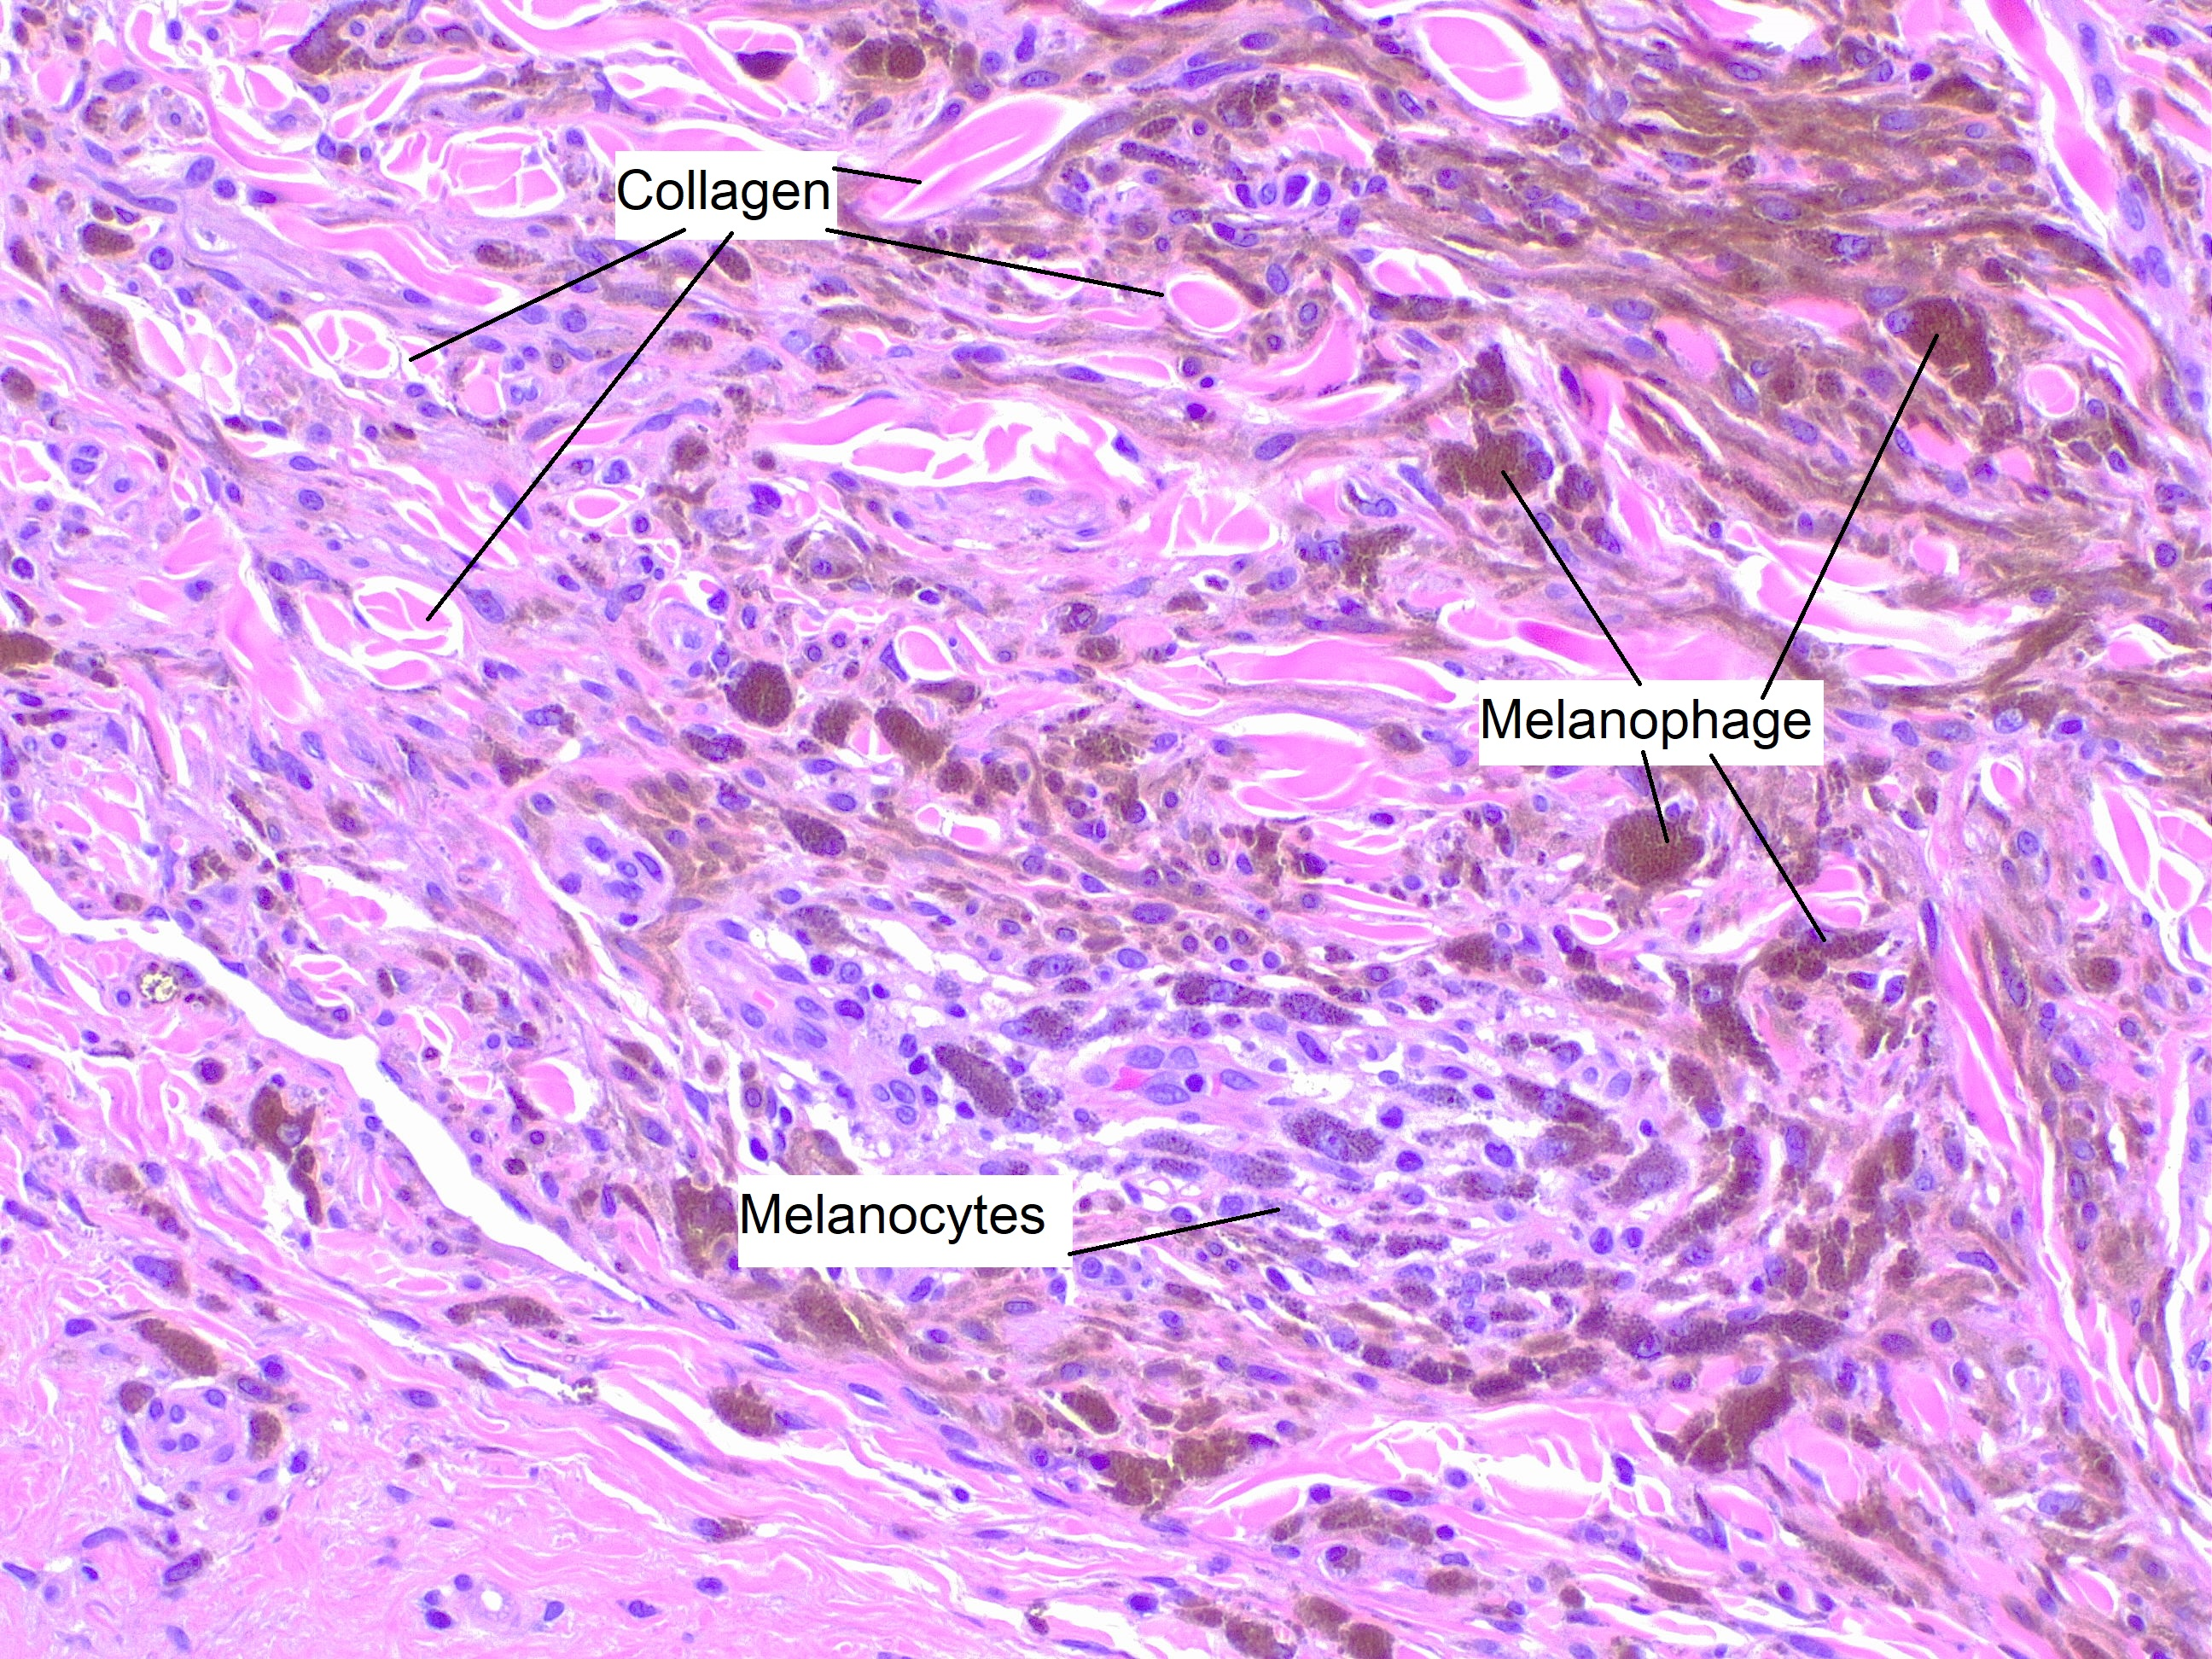 Blue nevus, H/E 20x. Spindle-shaped melanocytes without nuclear atypia or mitoses, deeply pigmented and surrounded by pigment-rich melanophages and collagen bundles.